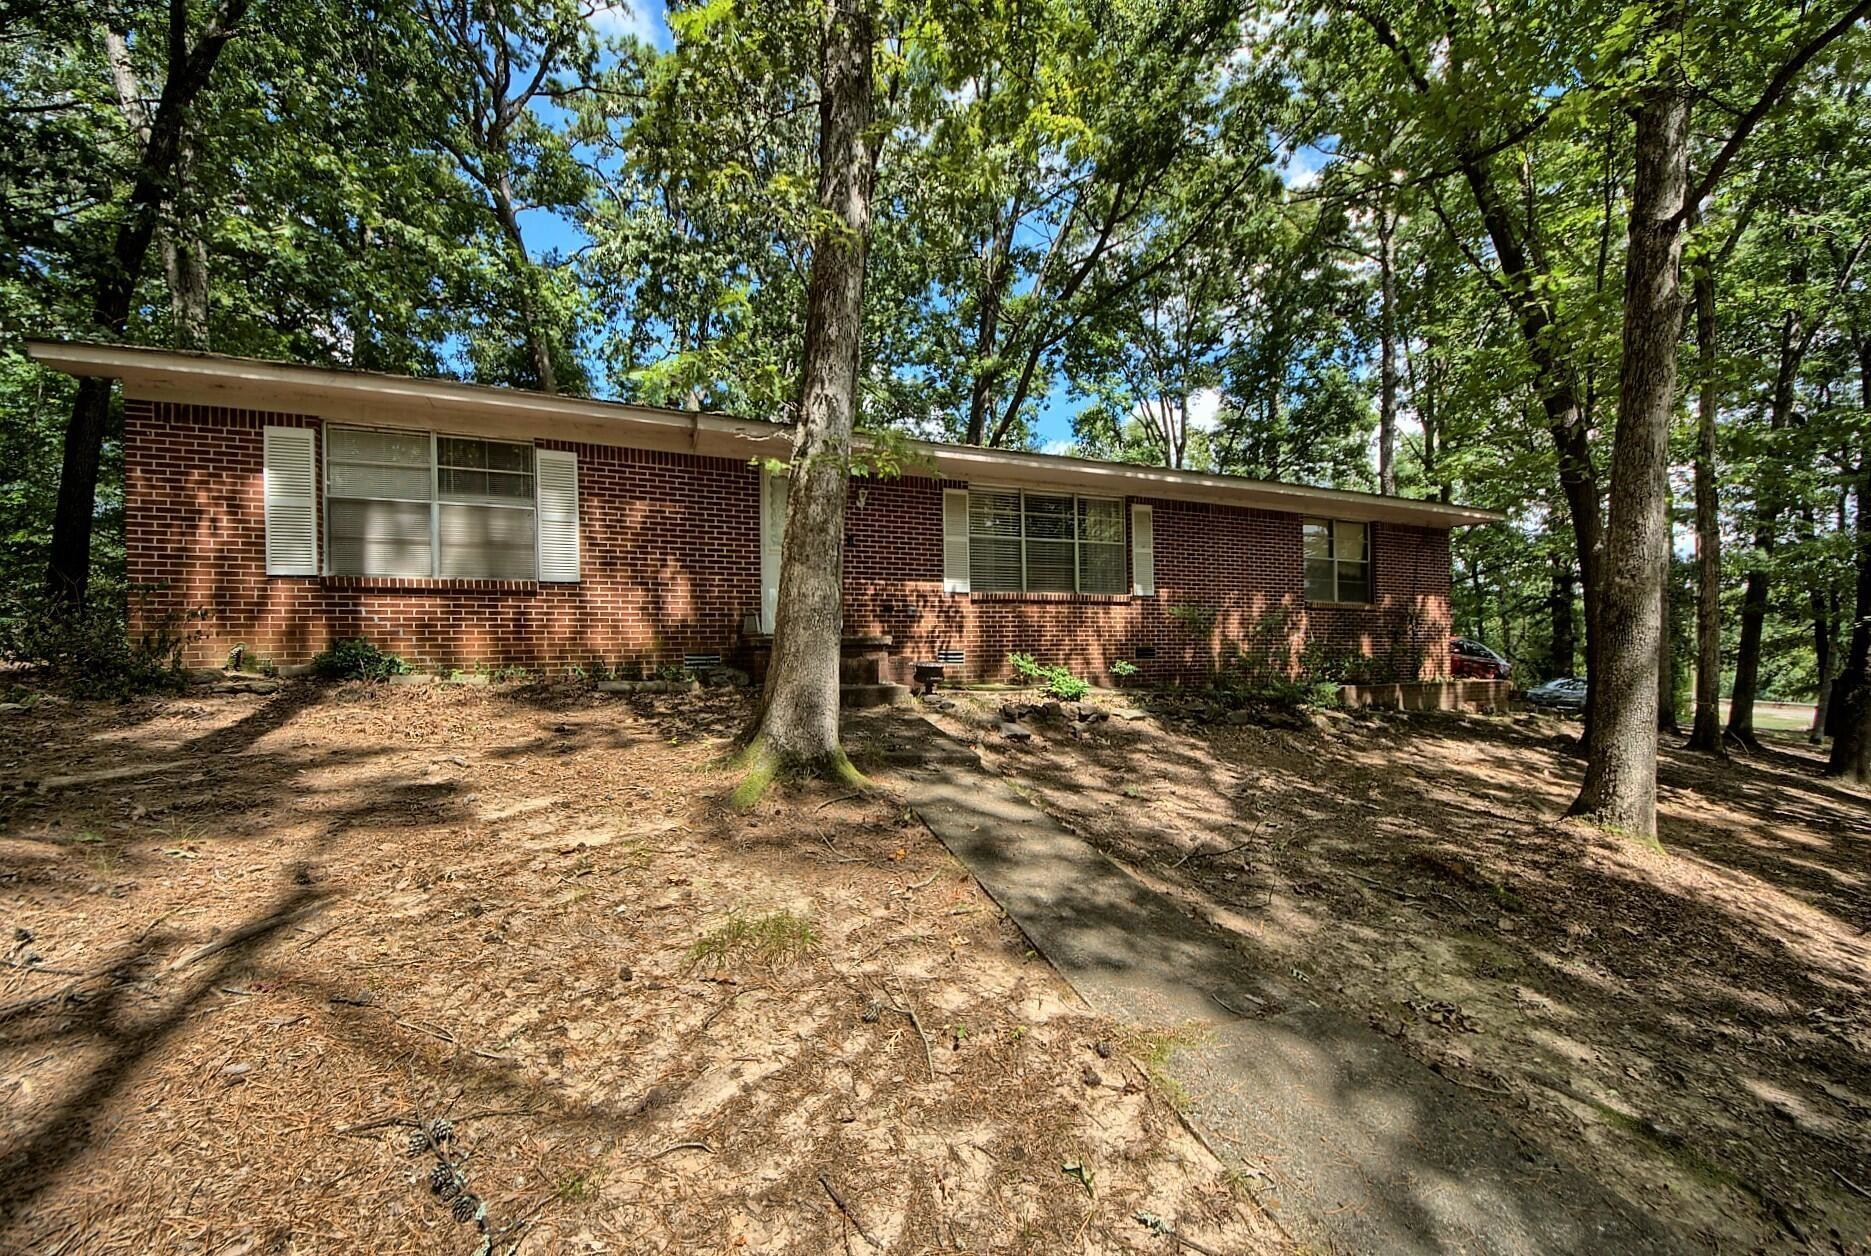 1254 SqFt House In Russellville